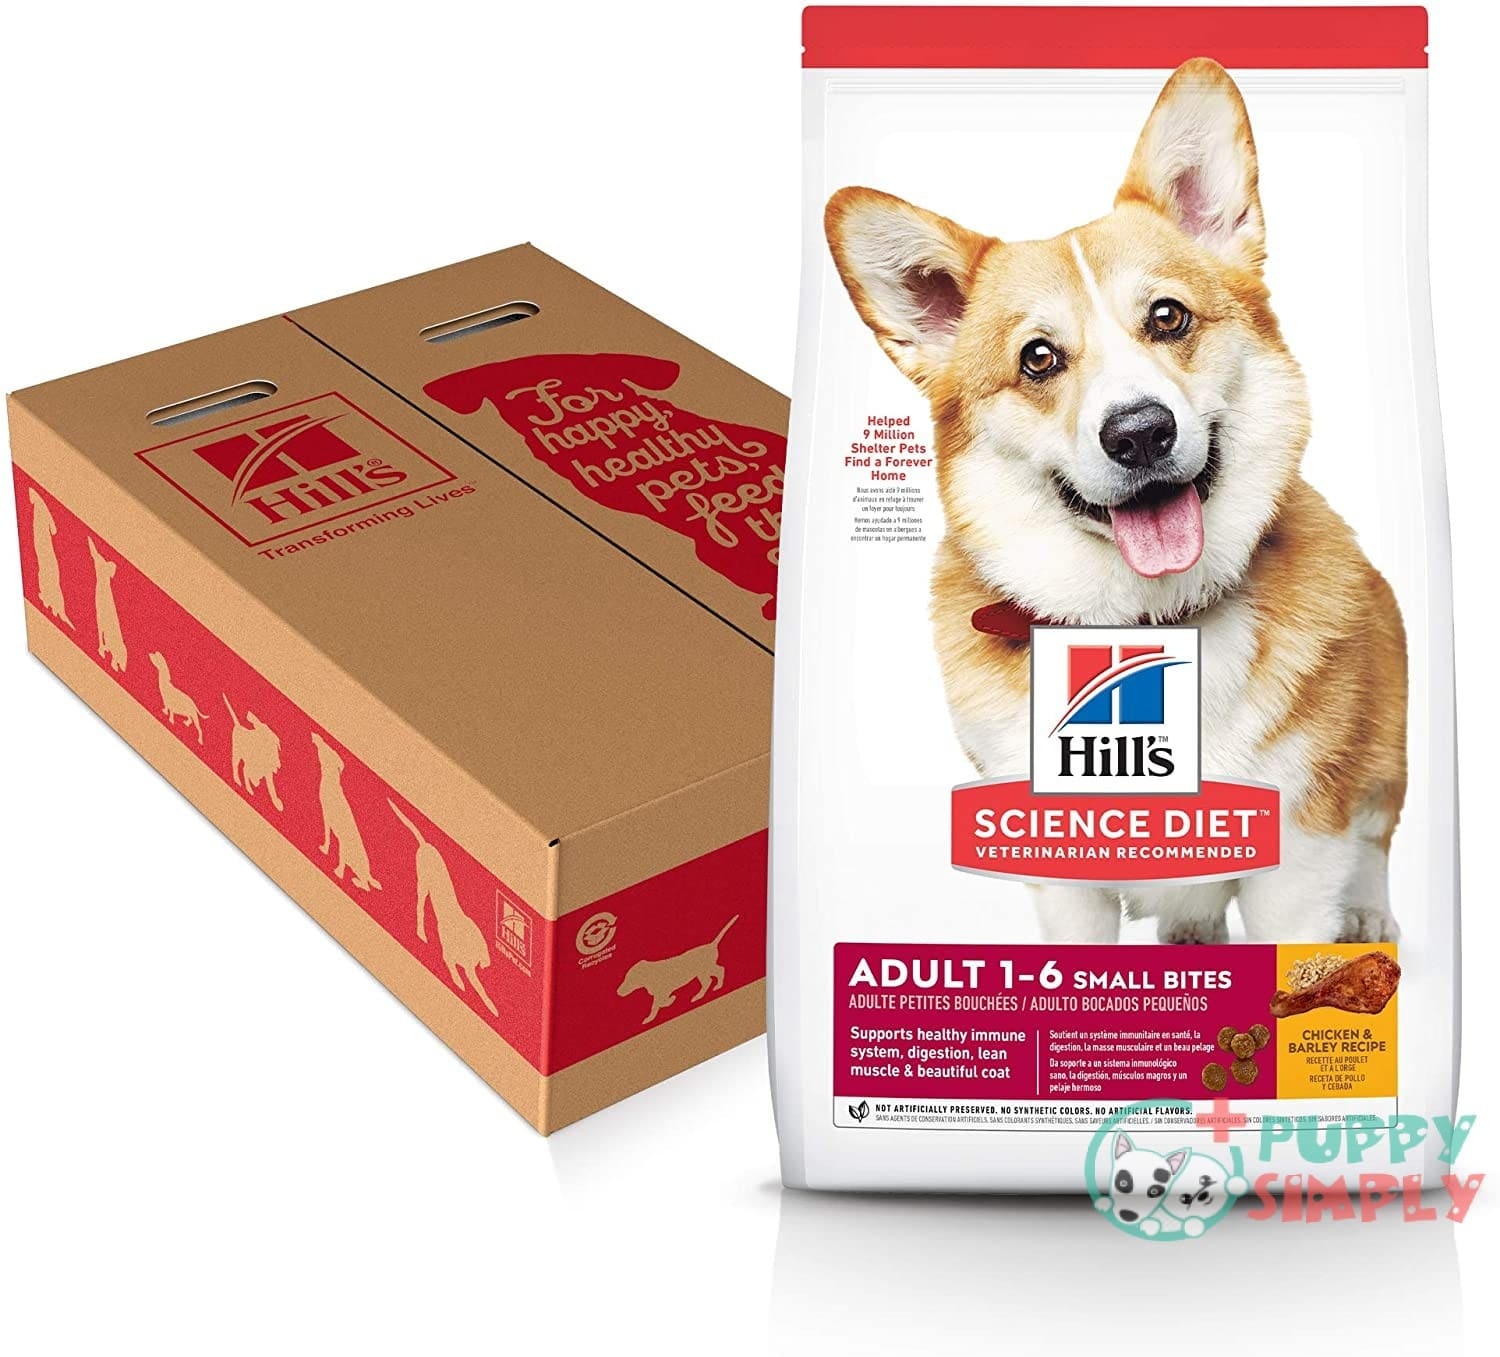 Hill's Science Diet Dog Food for Pugs